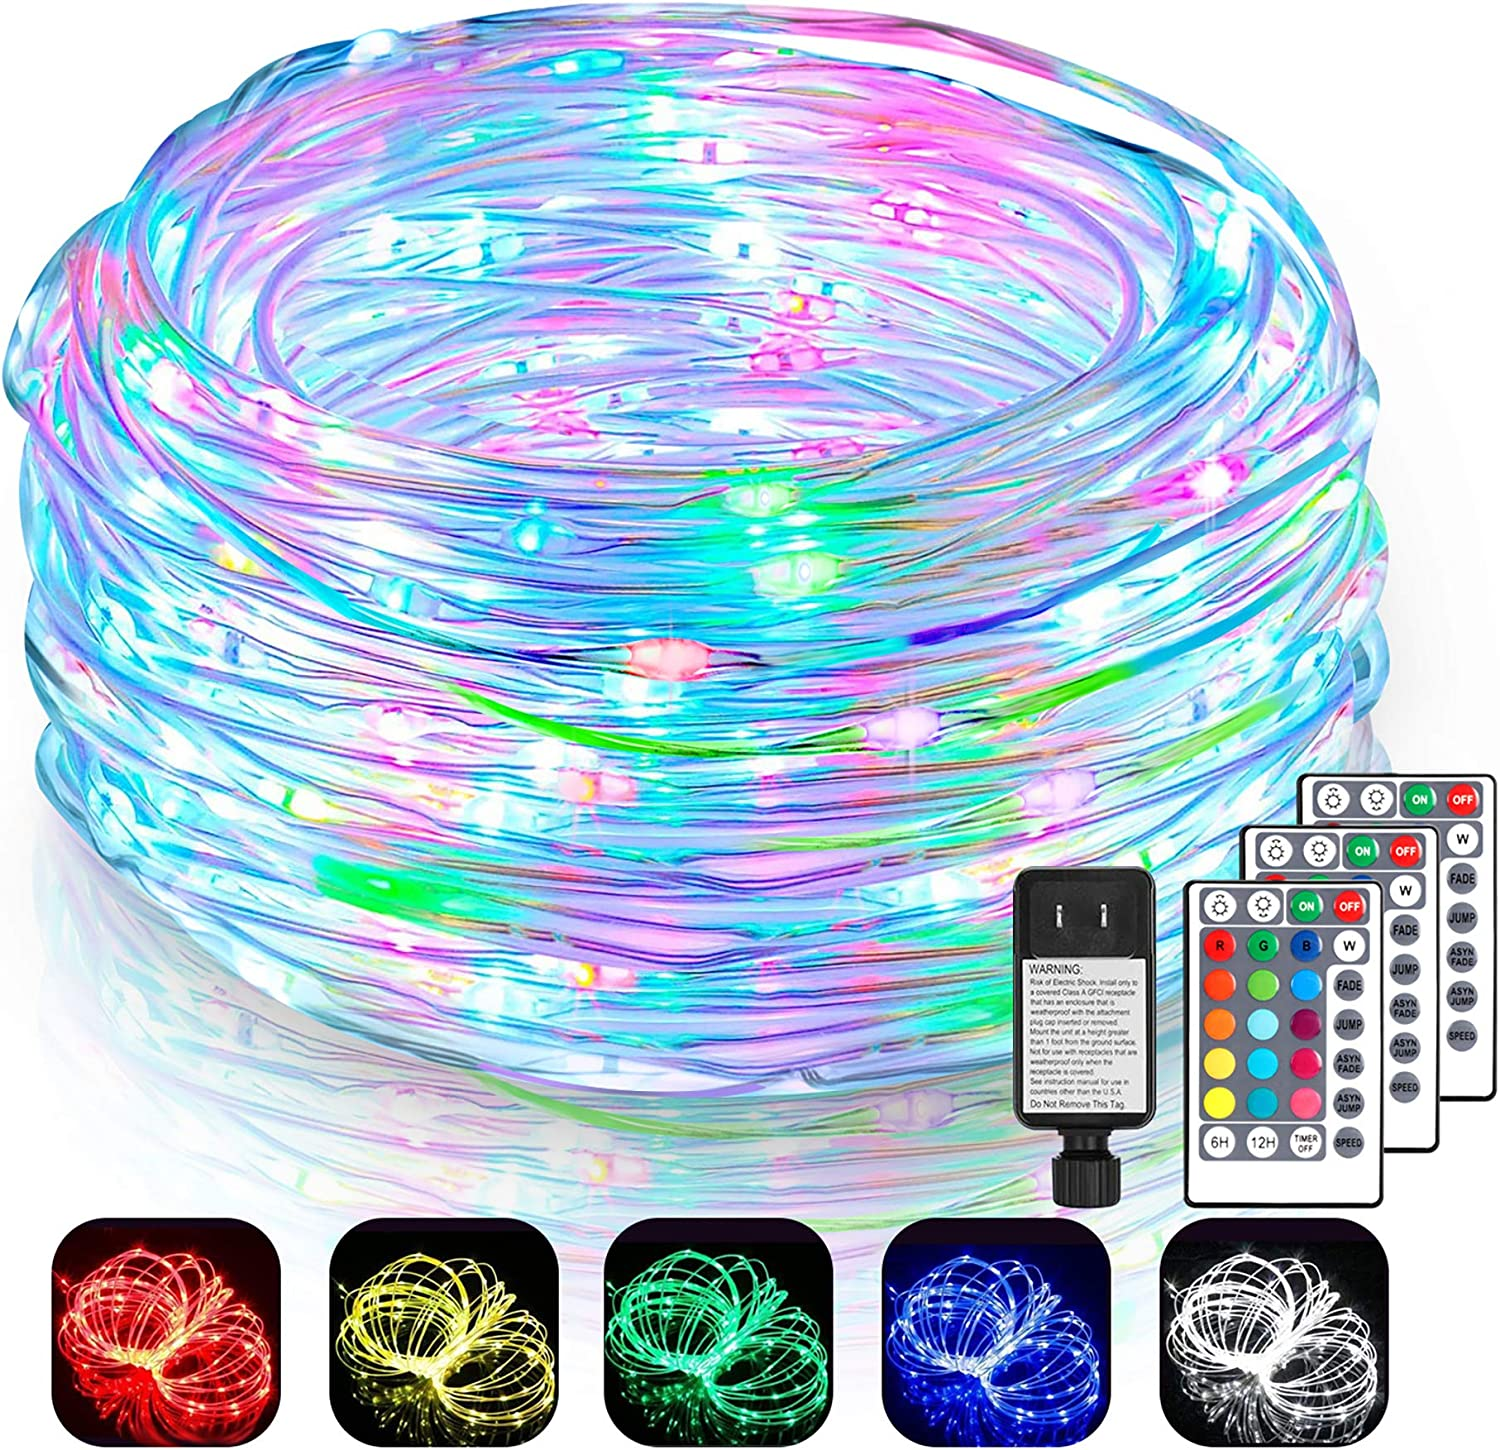 2 Pack Each 99Ft LED Outdoor String Lights, Rope Lights 300 LEDs Color Changing Lights with Remote, Waterproof Lights Plug-in Outdoor Fairy Lights for Wedding, Patio, Garden, Christmas Decor,16 Colors